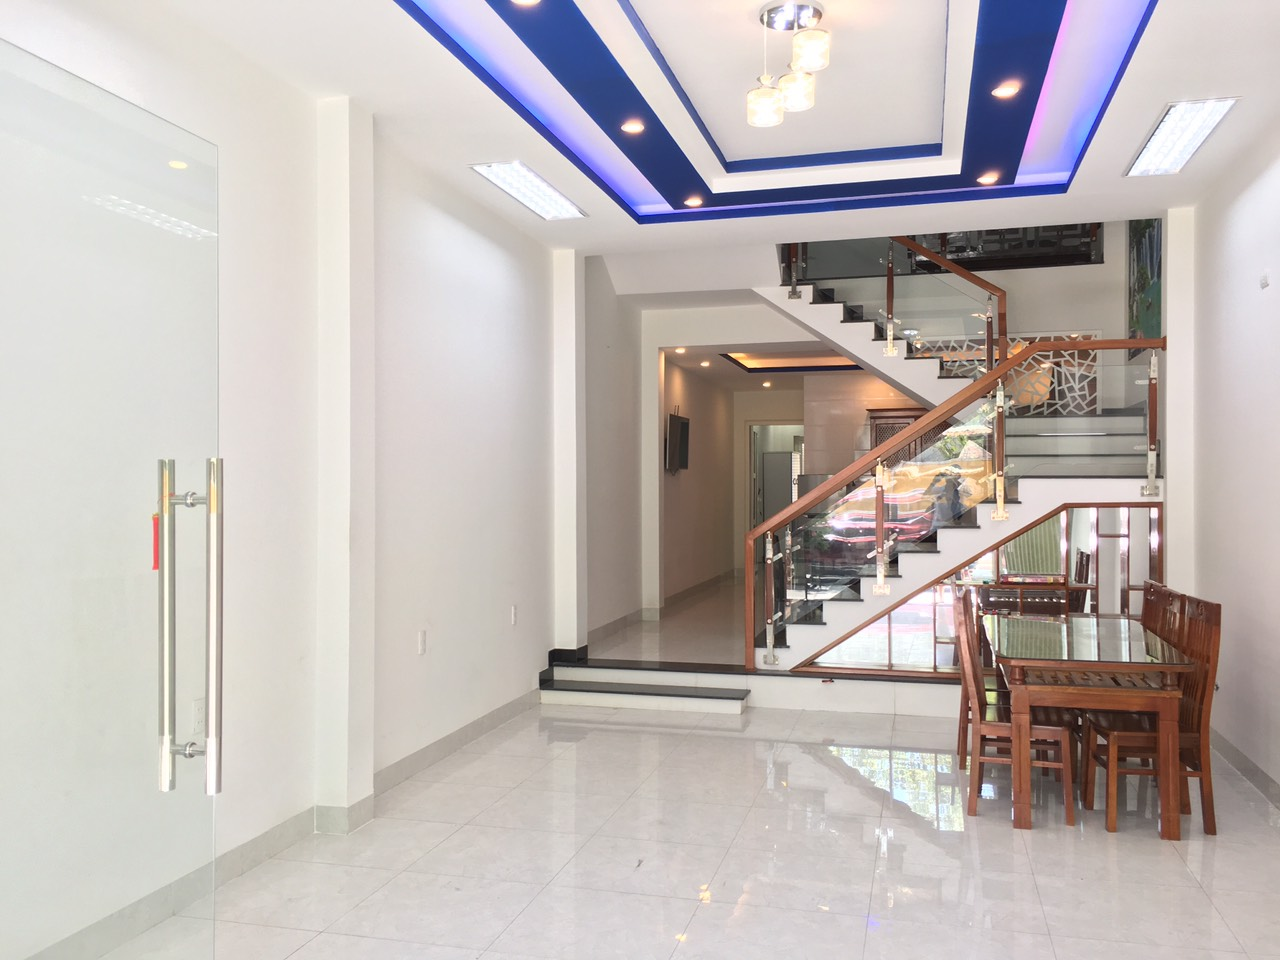 6 bedroom house, Ton Quang Phiet street – B266